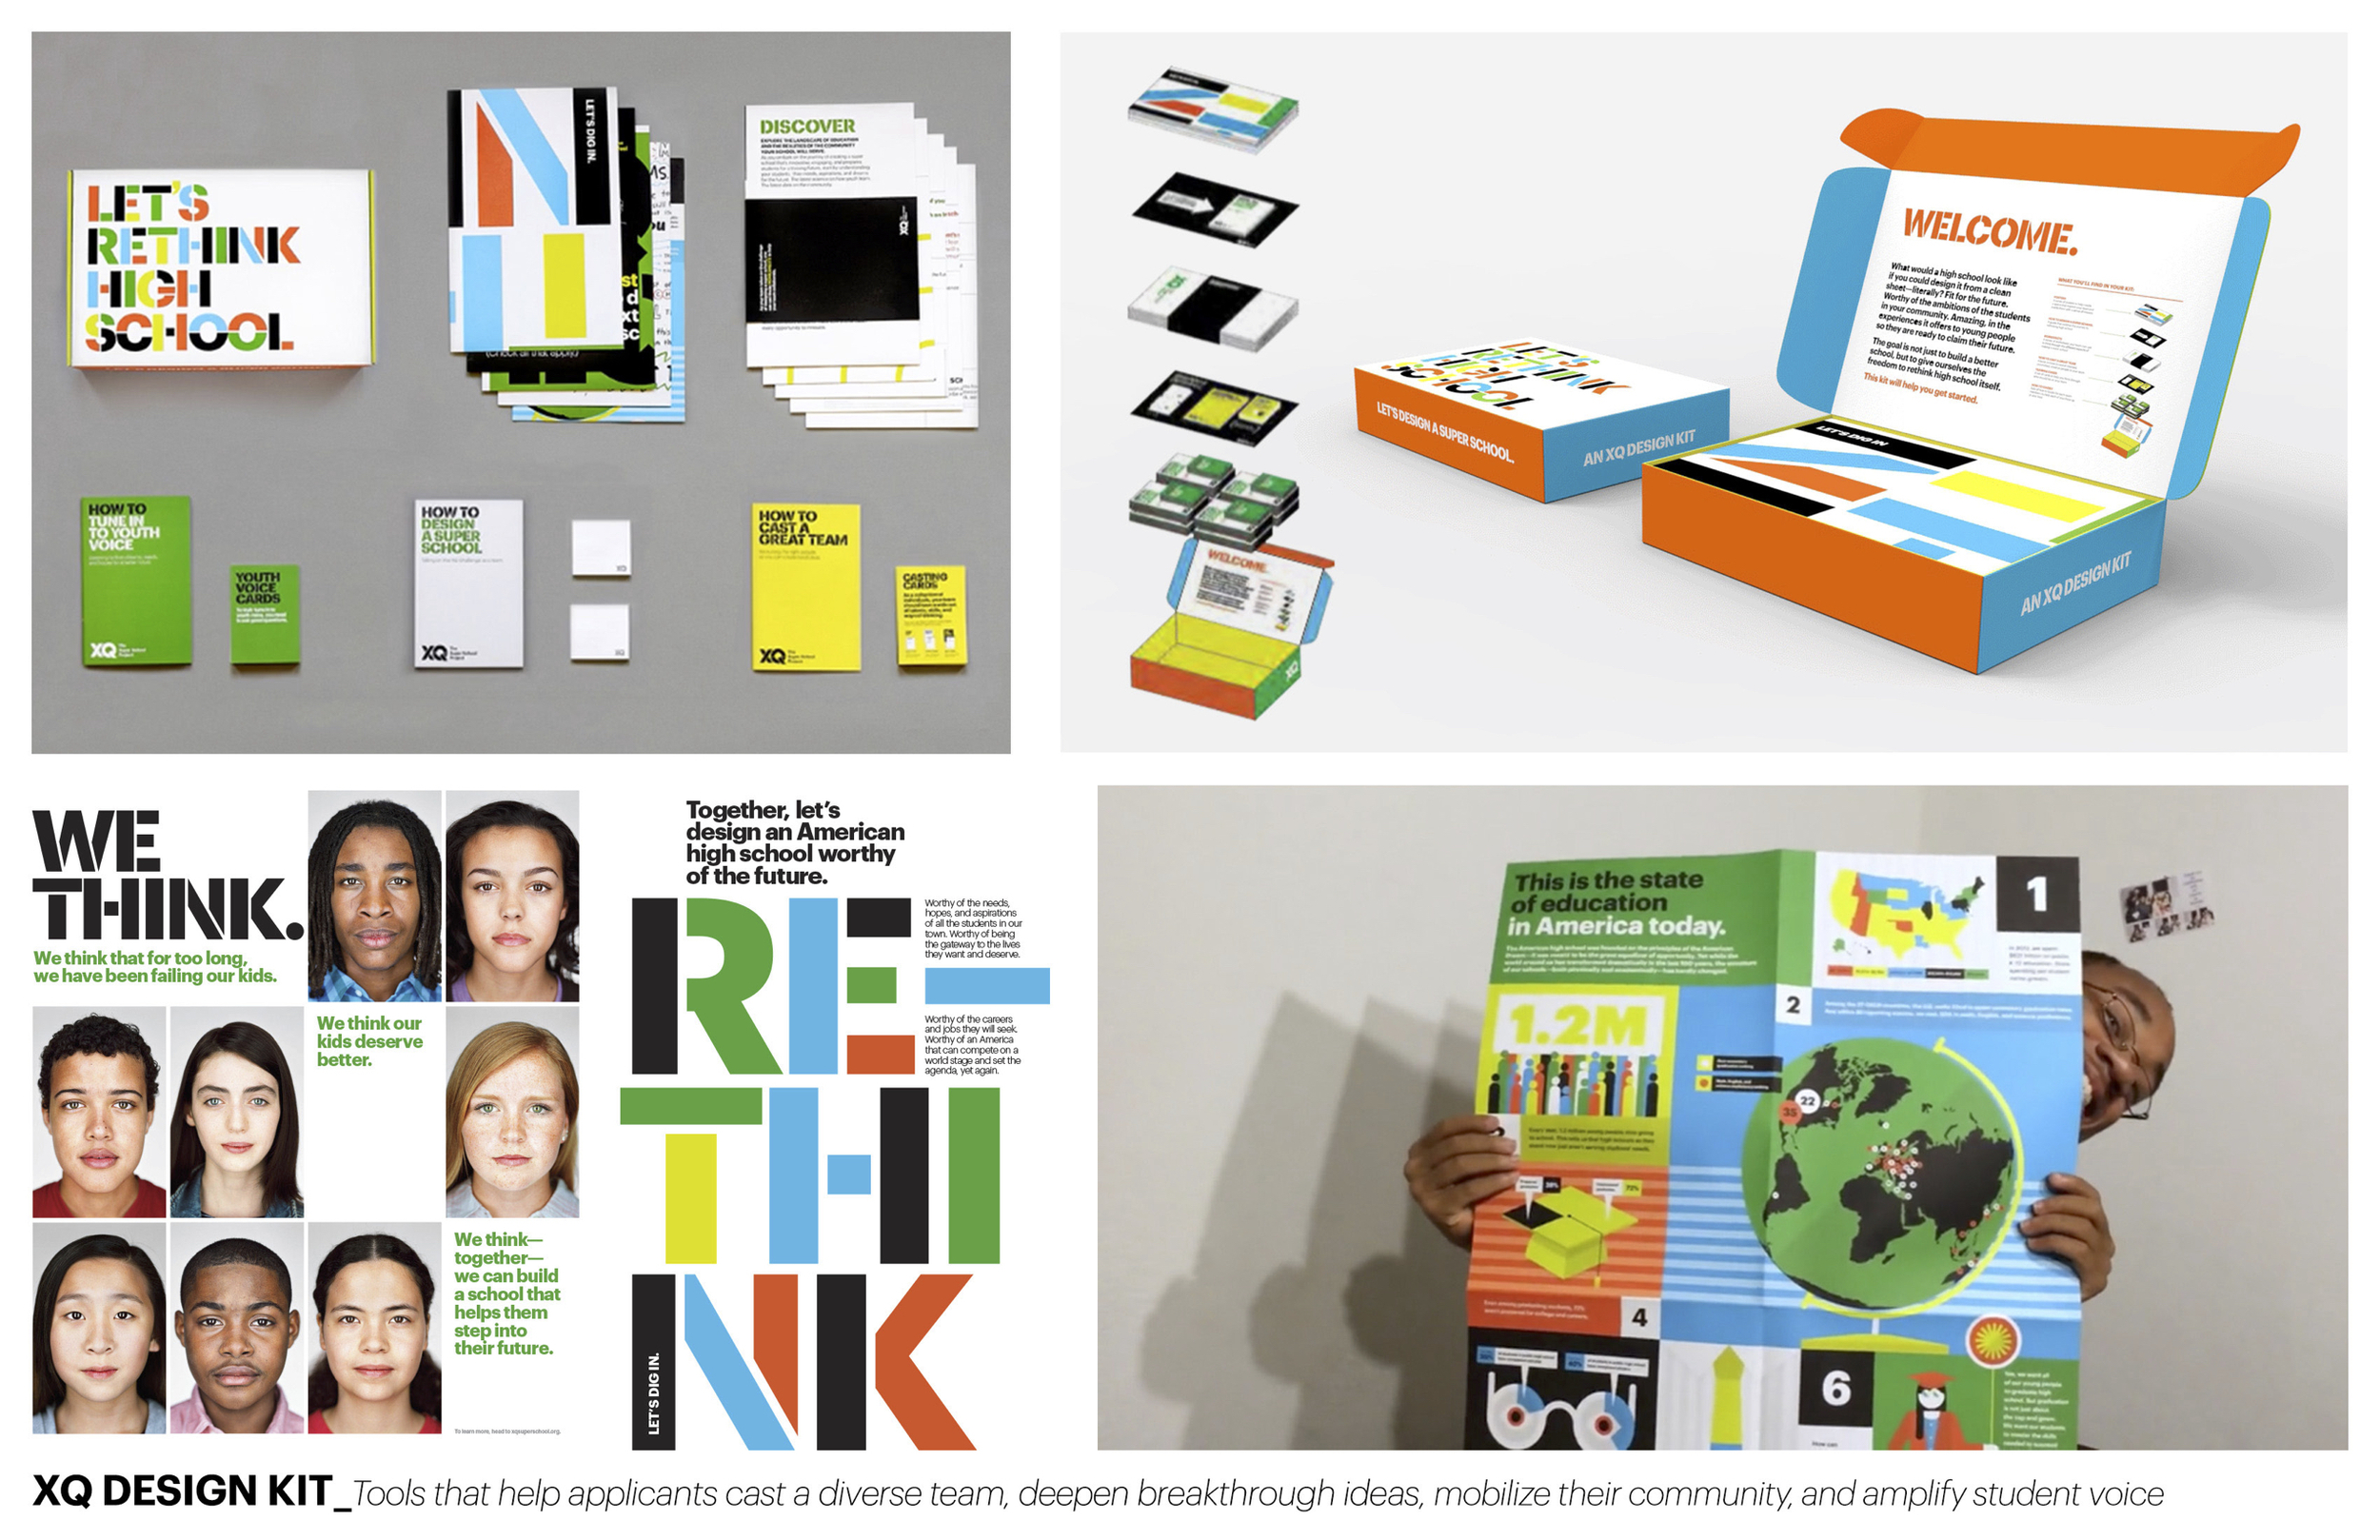 School Design Kit  - Tools that help applicants cast a diverse team, deepen breakthrough ideas, mobilise their community, and amplify student voice